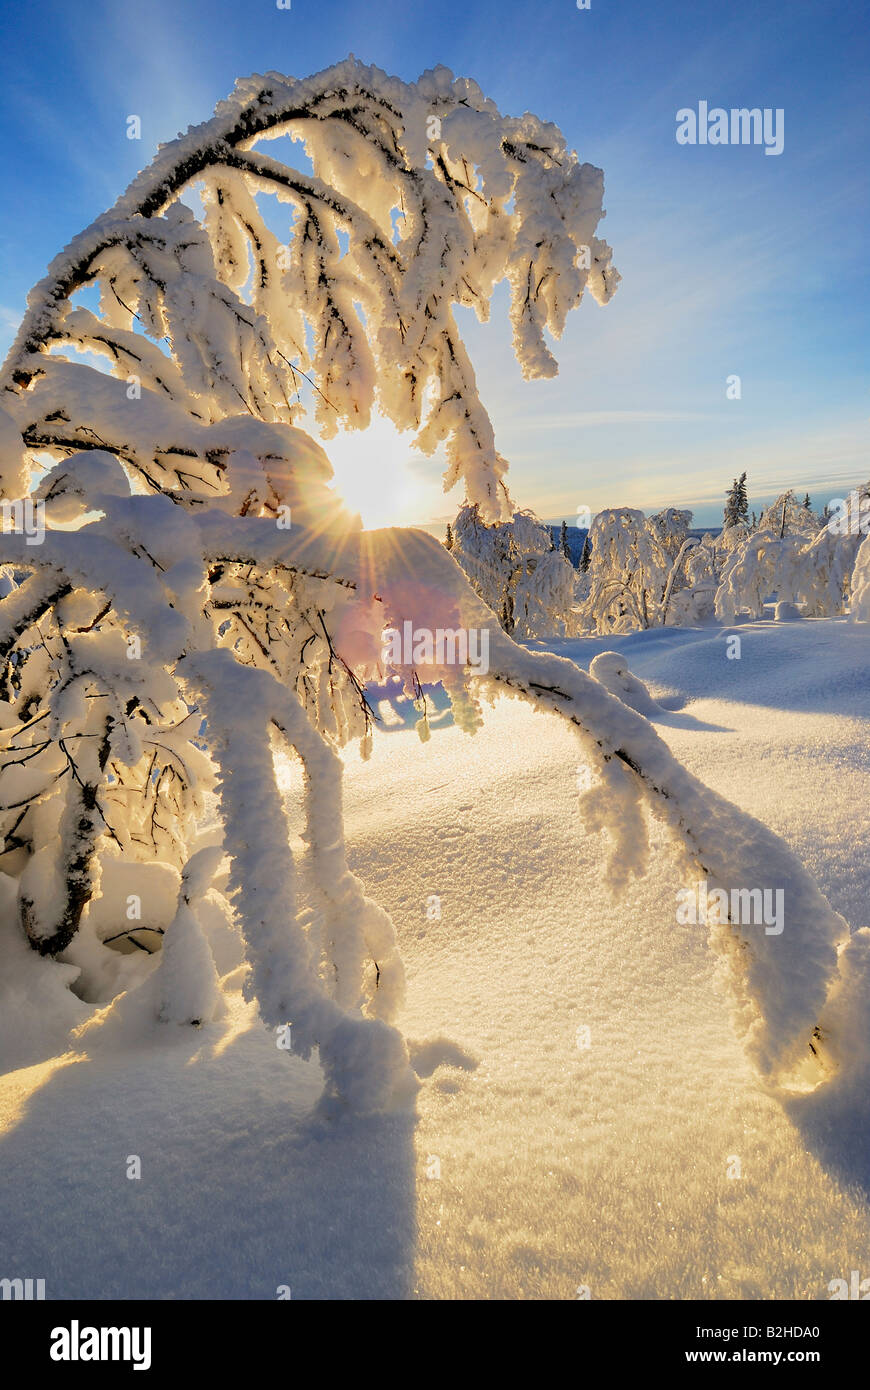 wintry landscape scenery snow covered stubba nature reservatoin Laponia lapland norrbotten sweden scandinavia europe - Stock Image